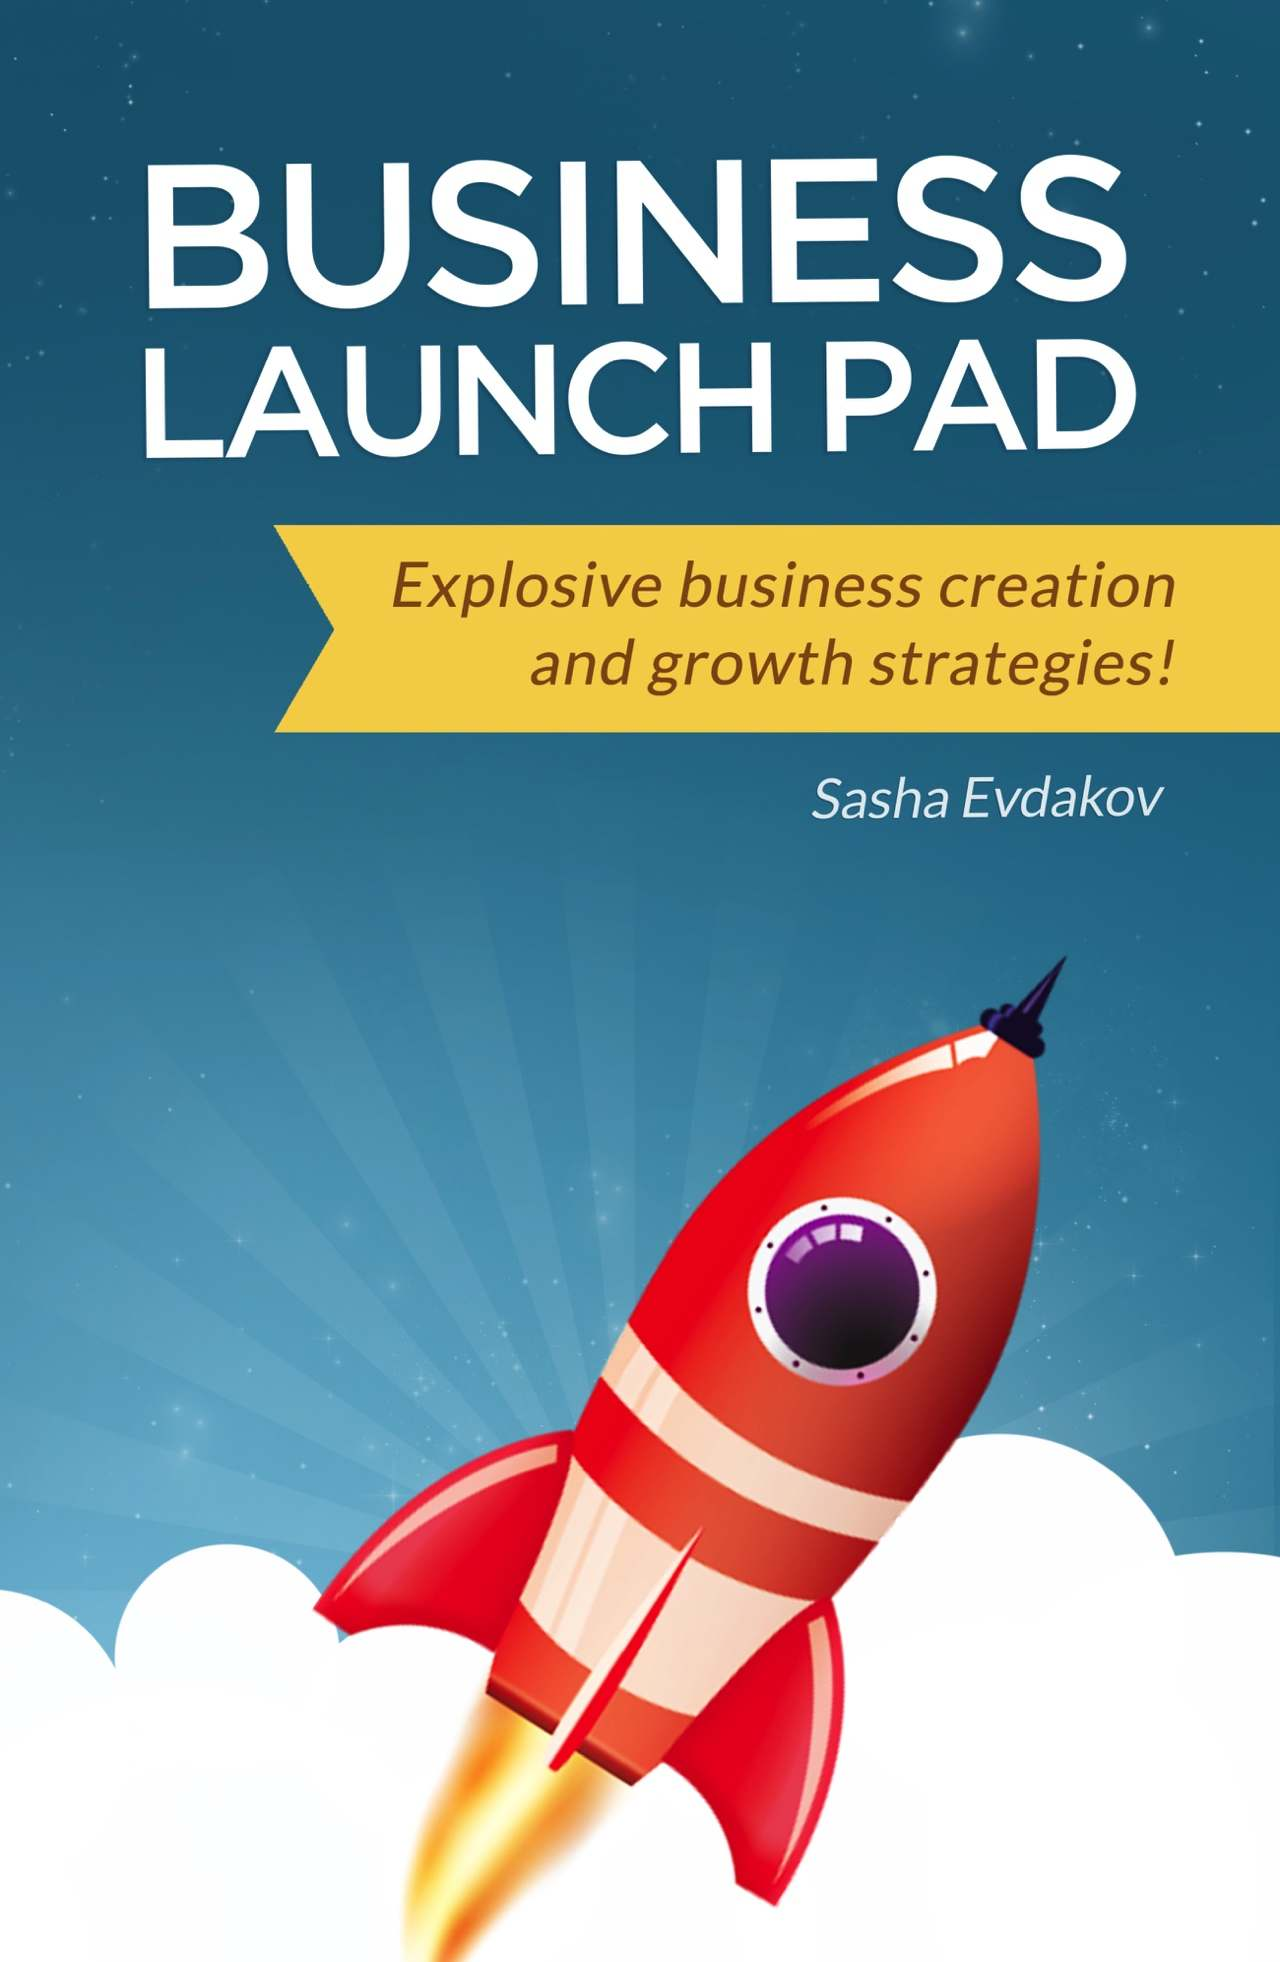 business launch pad book by Sasha Evdokov